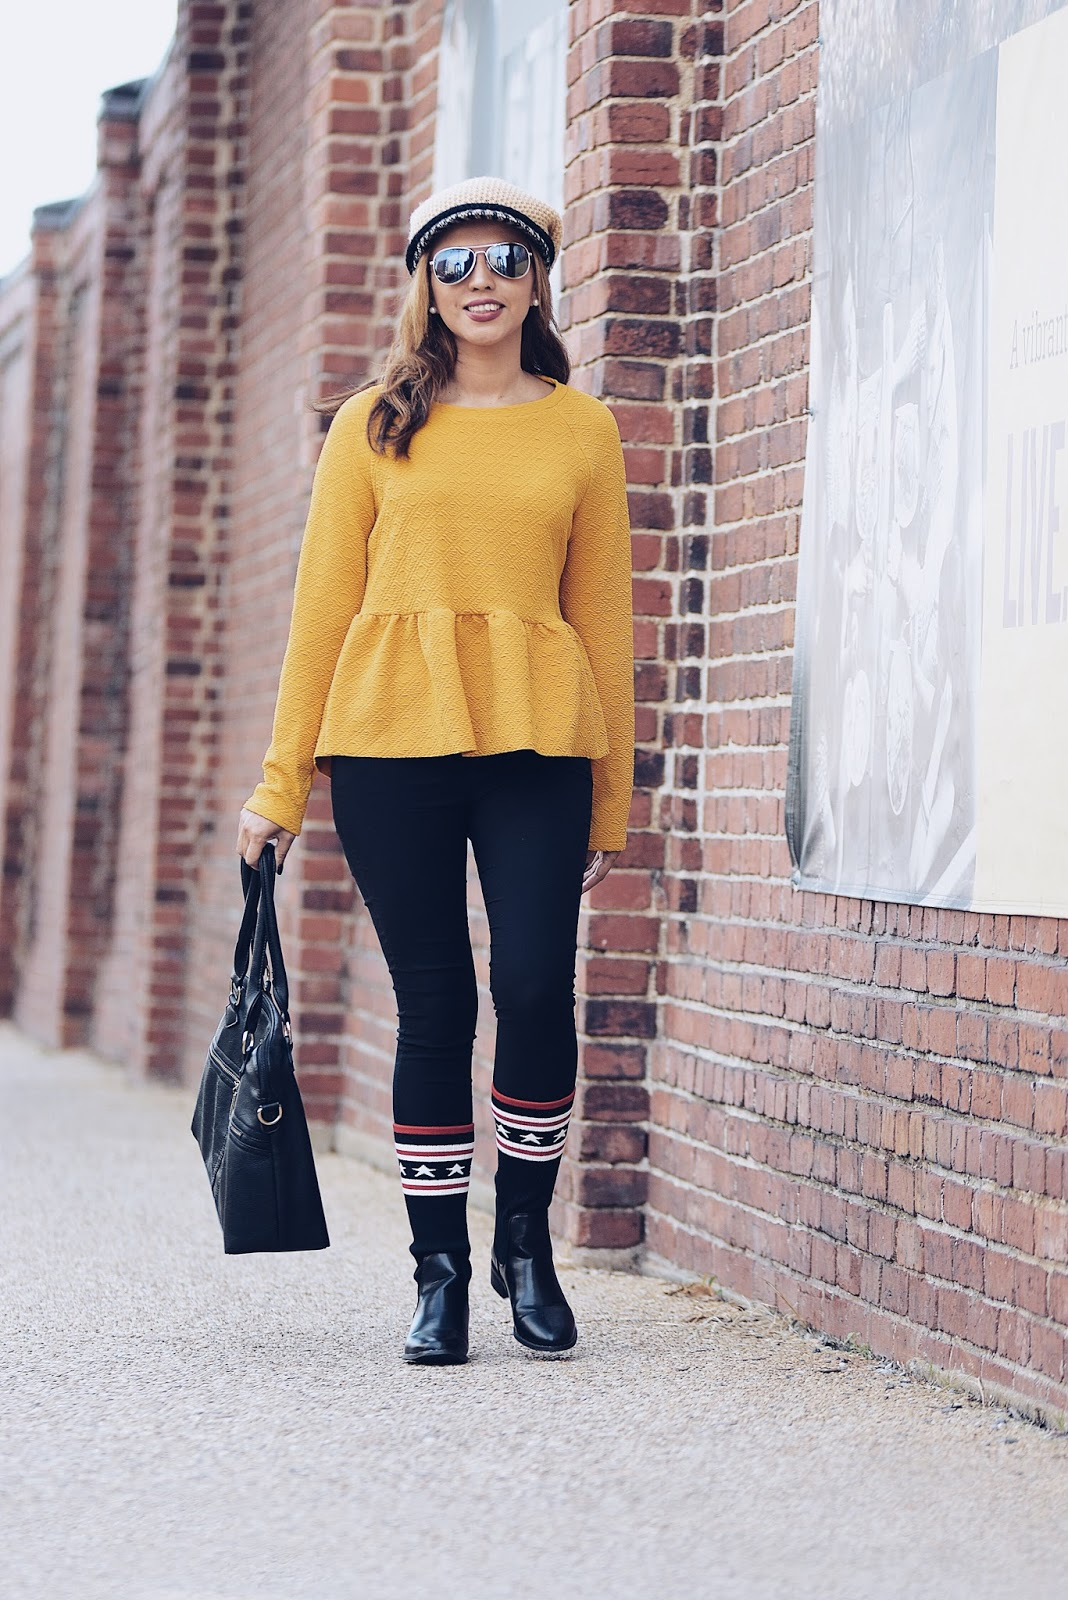 Some Mustard Yellow  by MariEstilo-look of the day-fashionblogger-streetstyle-fashionista-moda-fallfashion